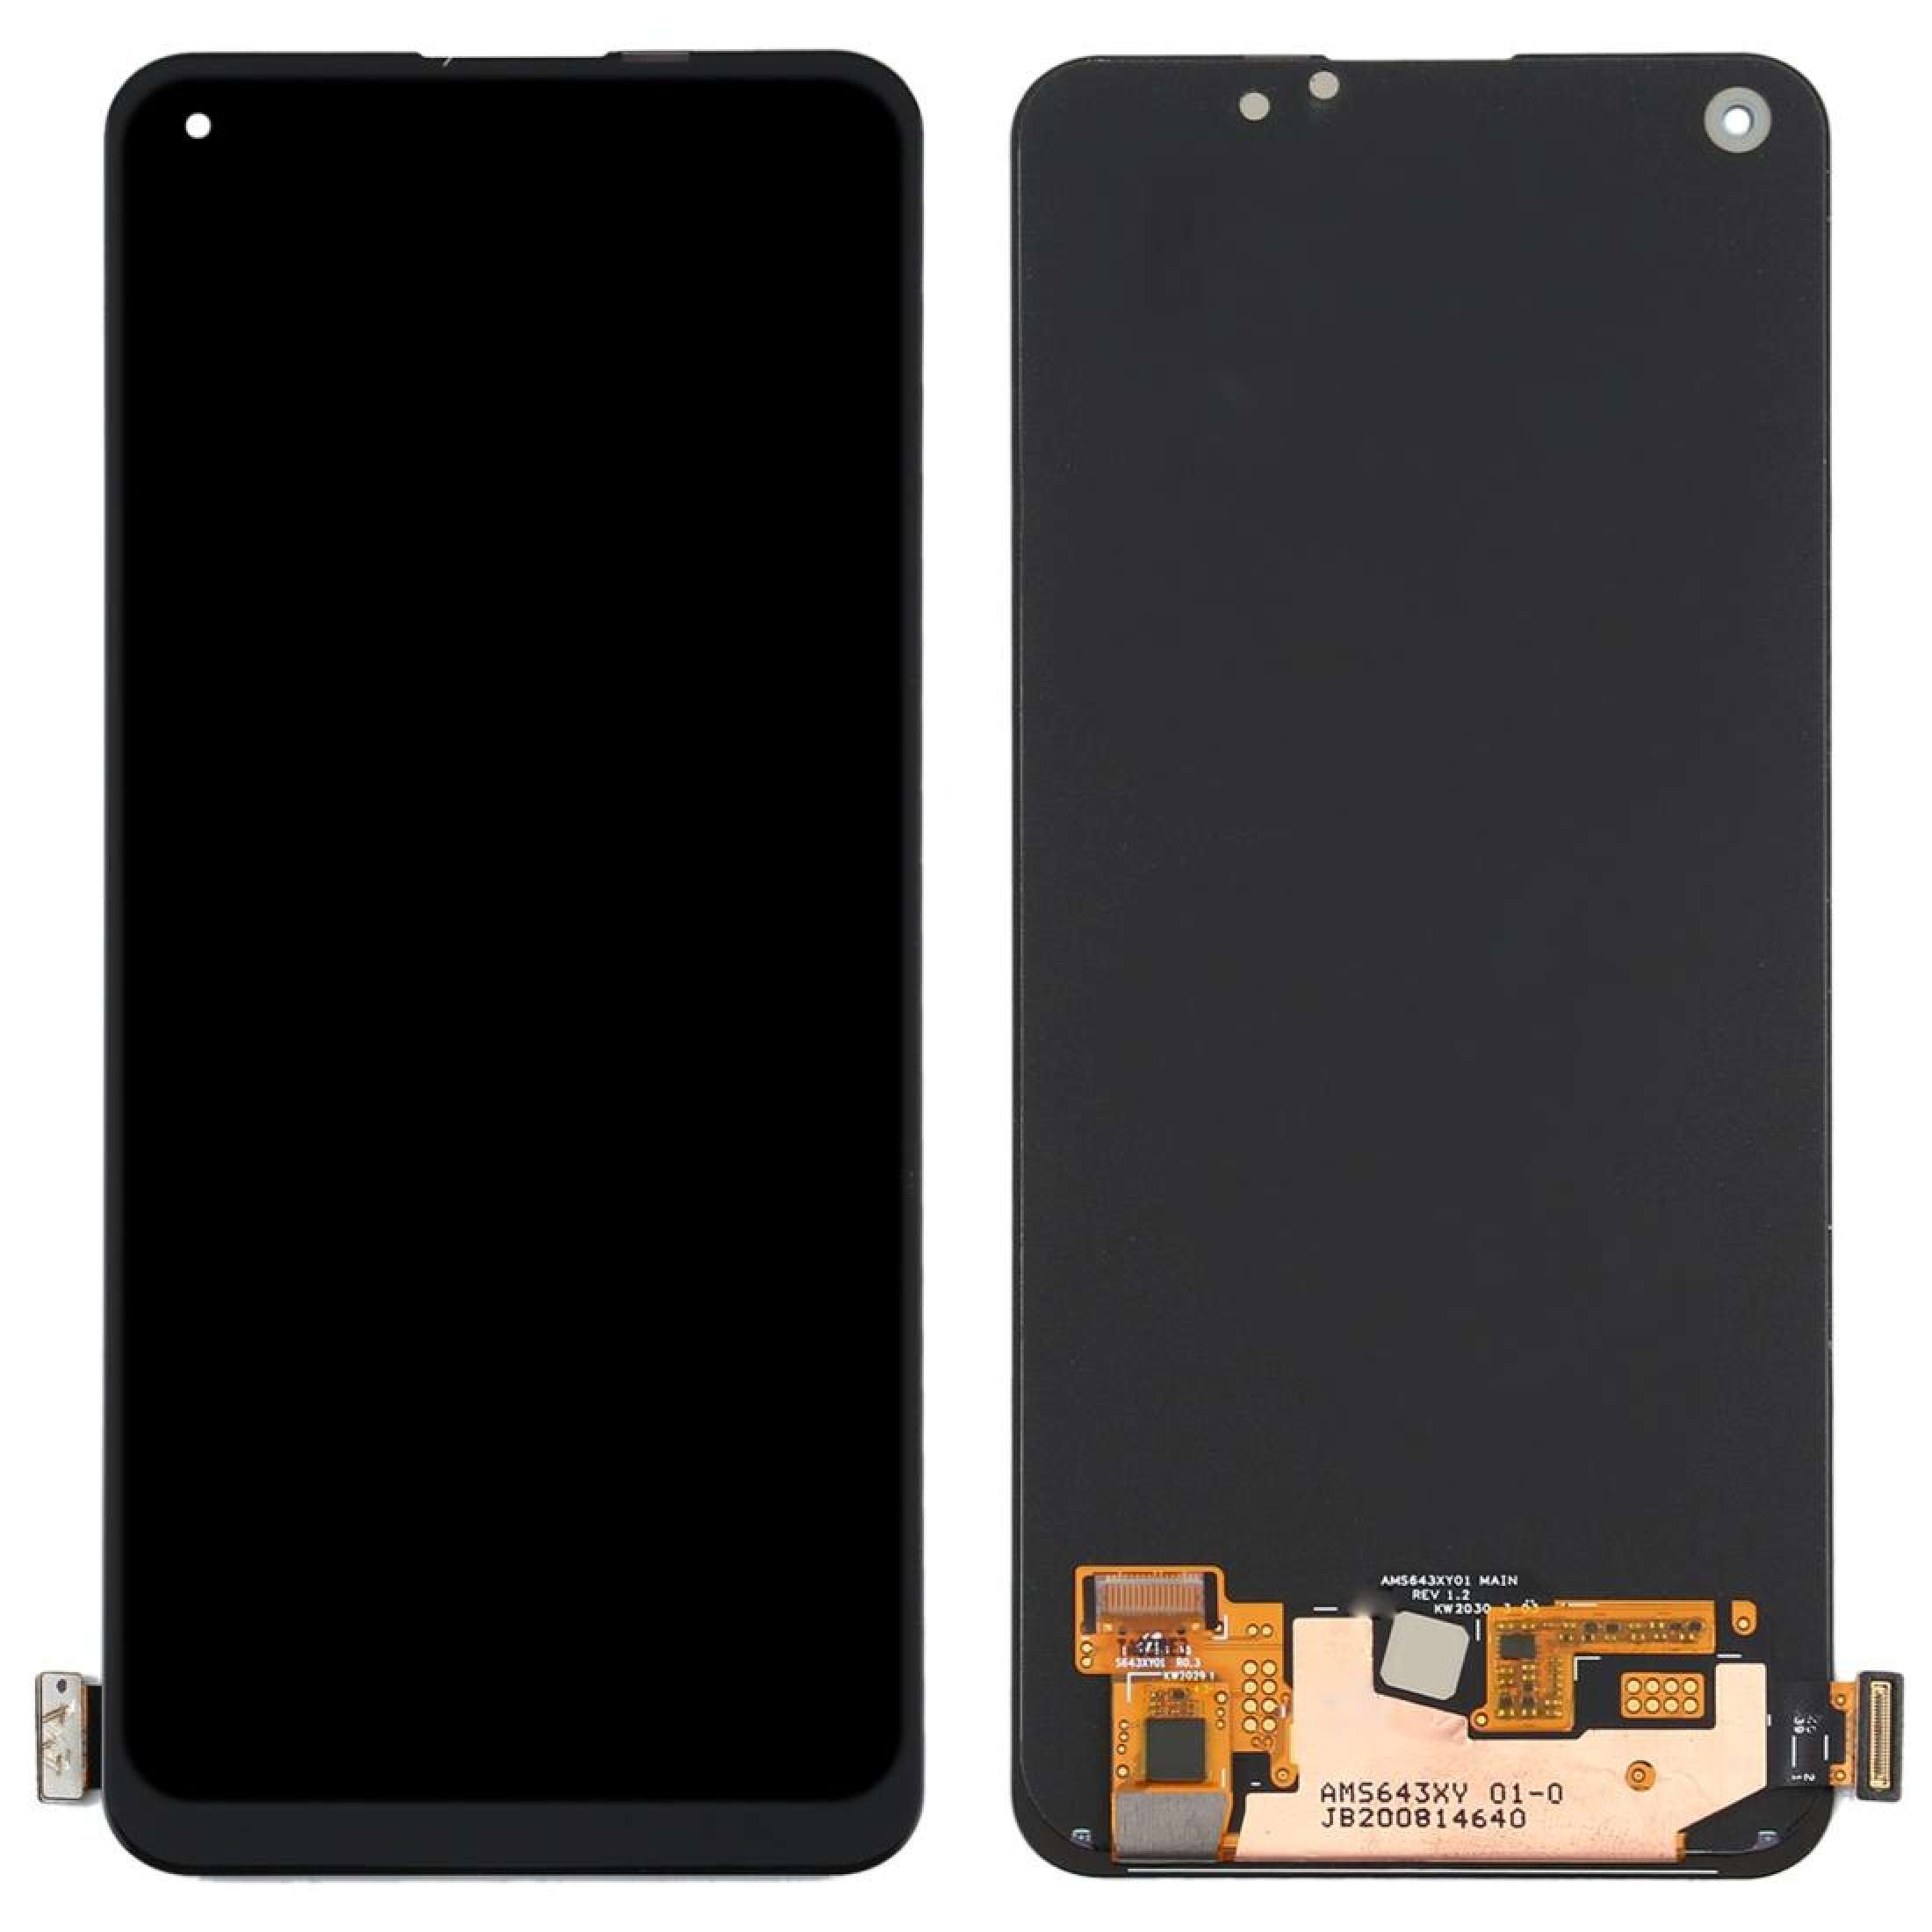 Original Super AMOLED Display For Realme 7 Pro RMX2170 LCD Display Screen Touch Digitizer Fingerprint Scanner With Screen enlarge